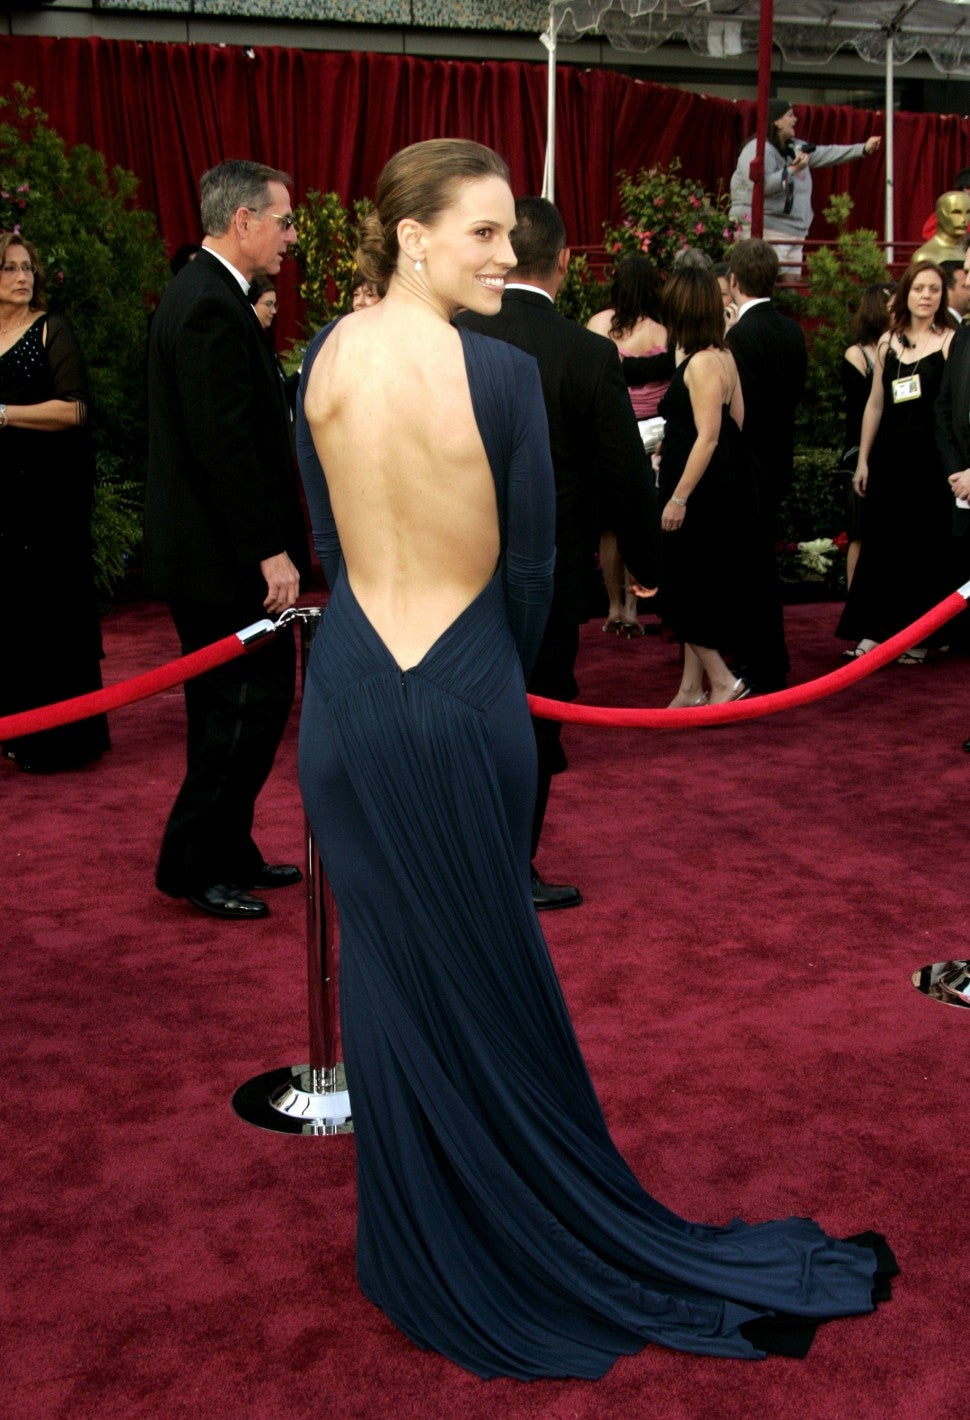 Hilary Swank Oscars 2005 dress